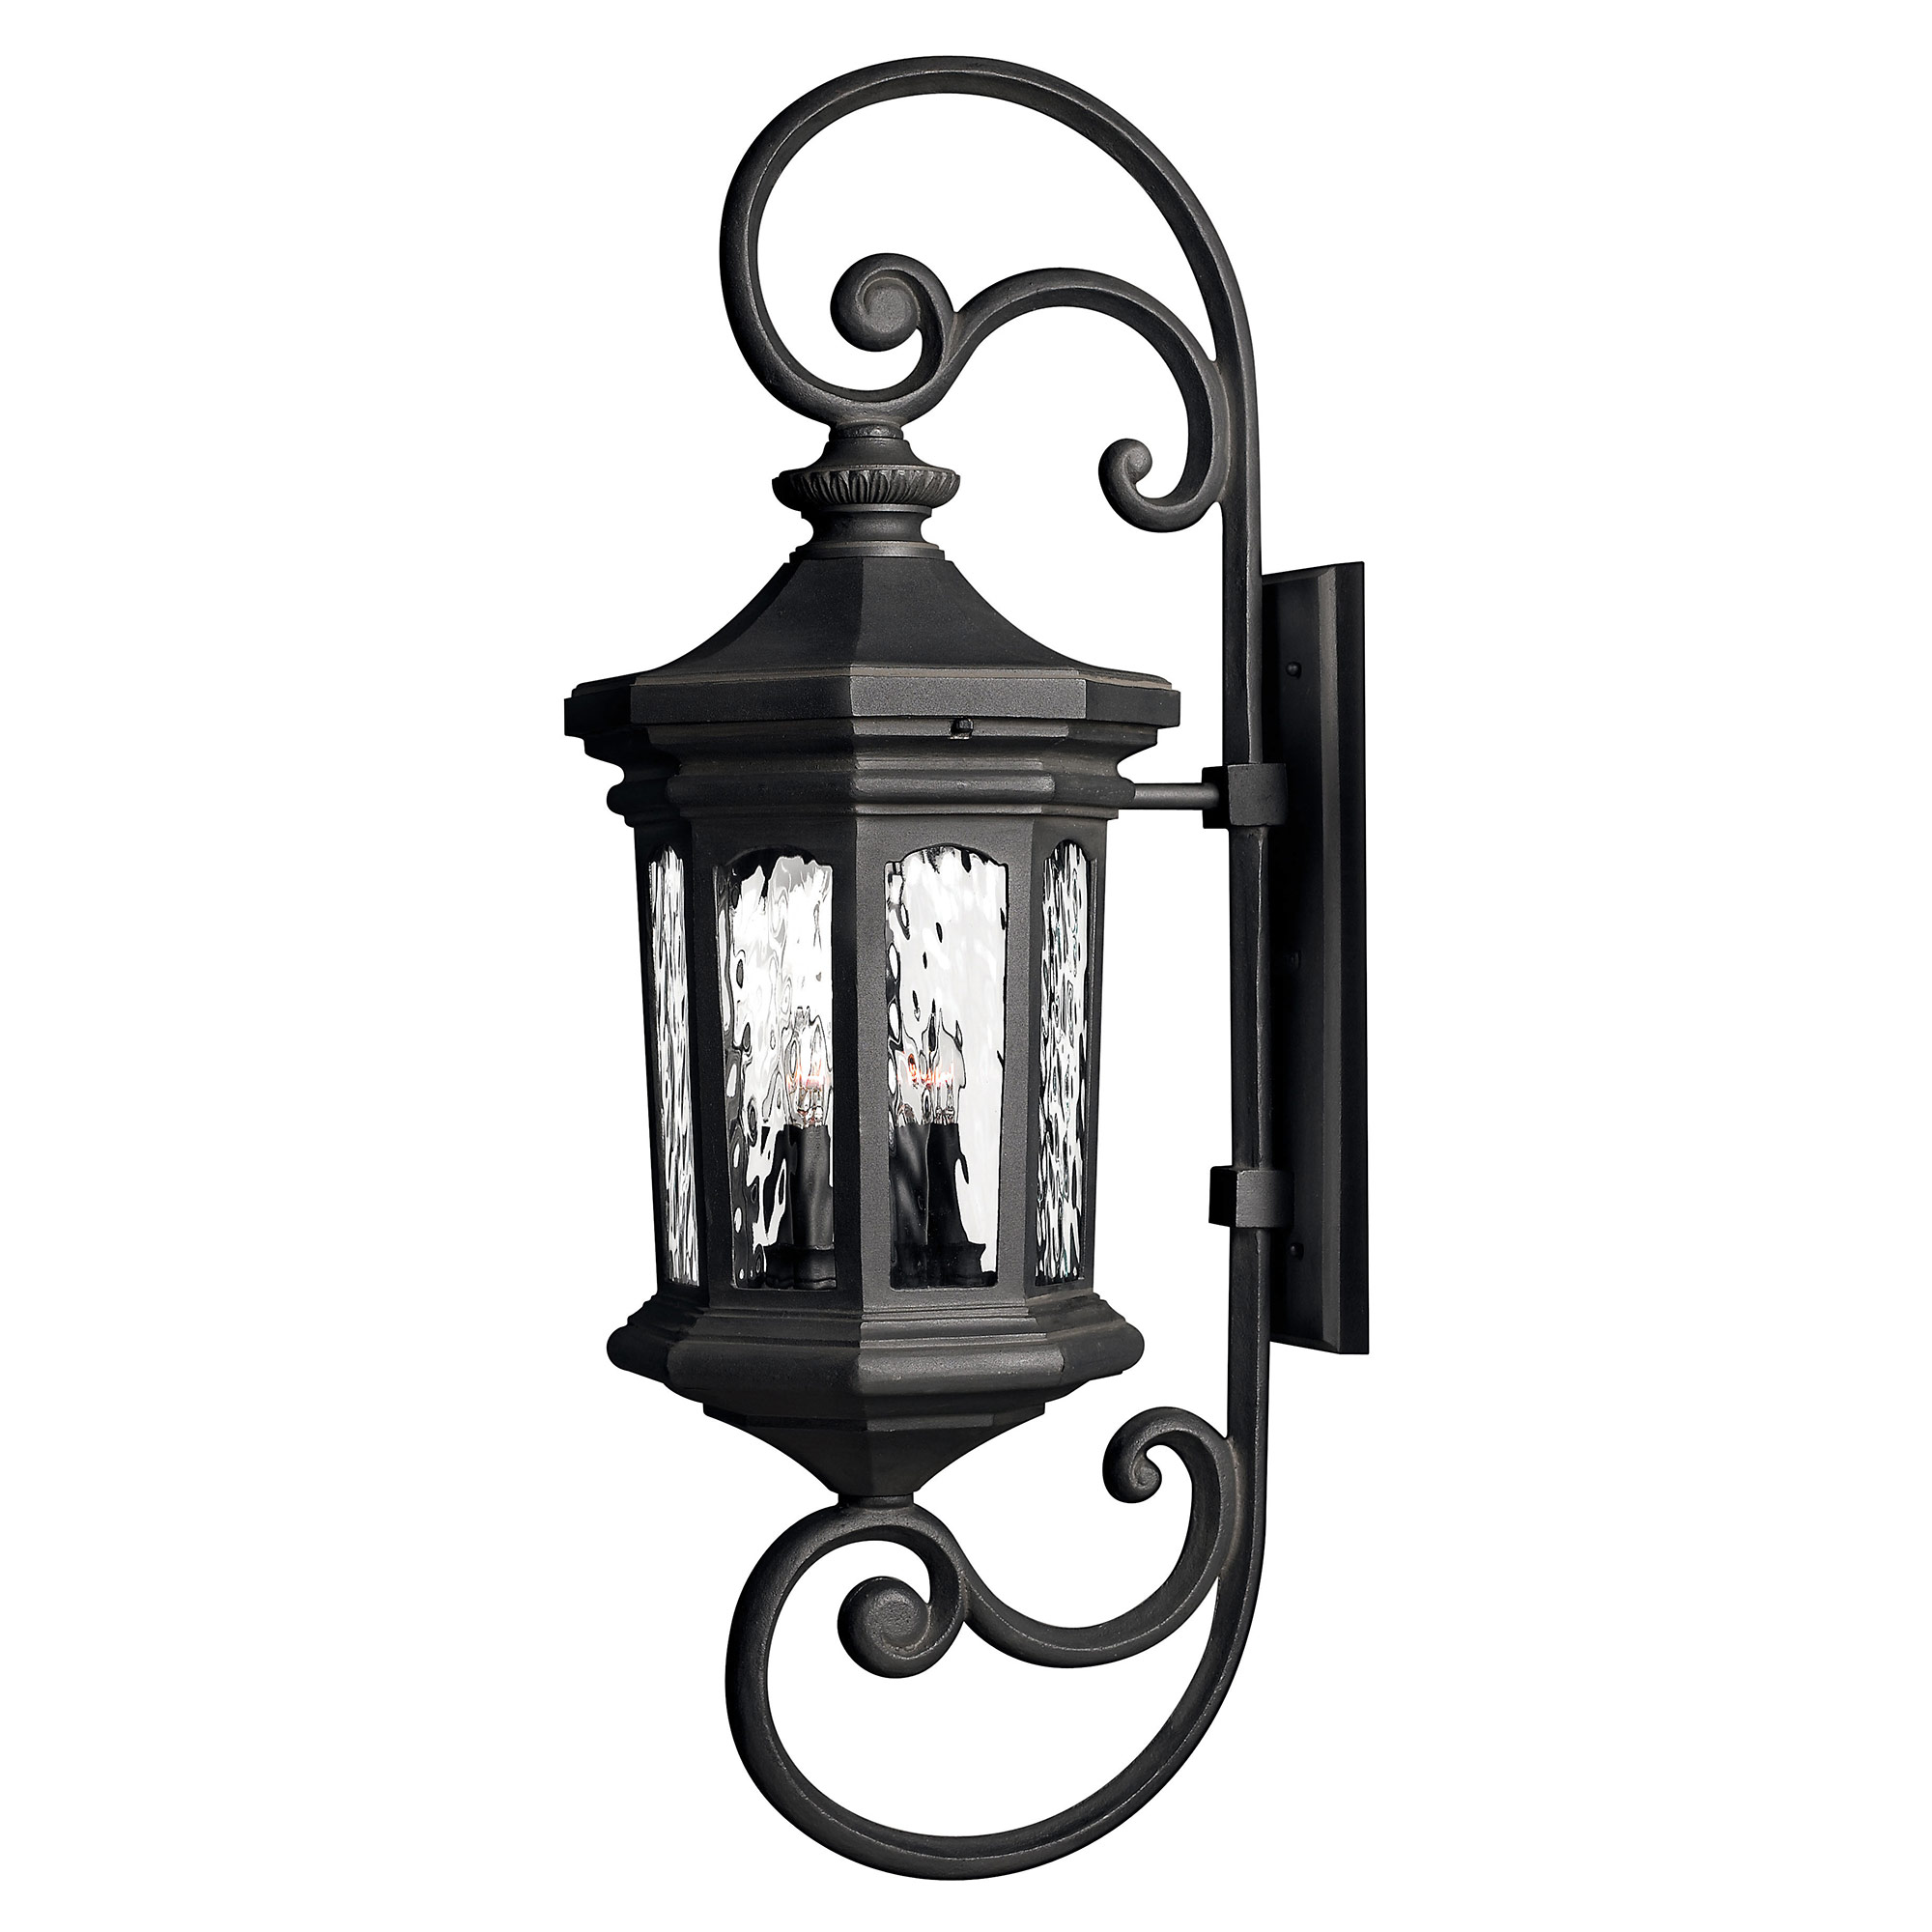 Hinkley Outdoor Wall Light: Raley Outdoor Curly Wall Light By Hinkley Lighting